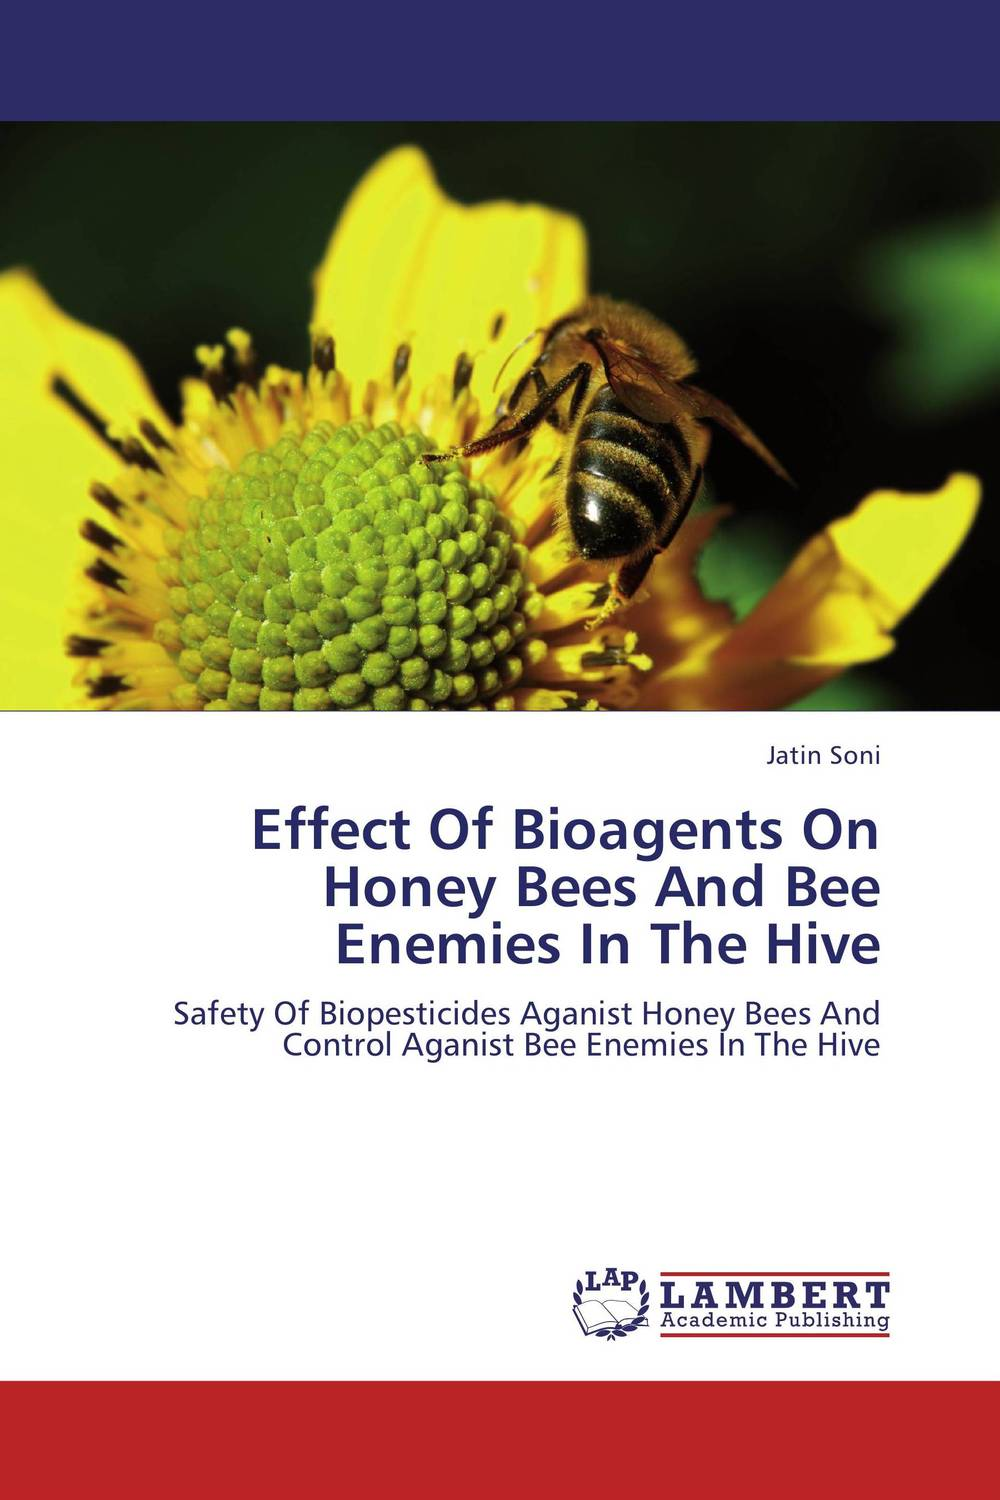 Effect Of Bioagents On Honey Bees And Bee Enemies In The Hive the wisdom of the hive – the social physiology of honey bee colonies